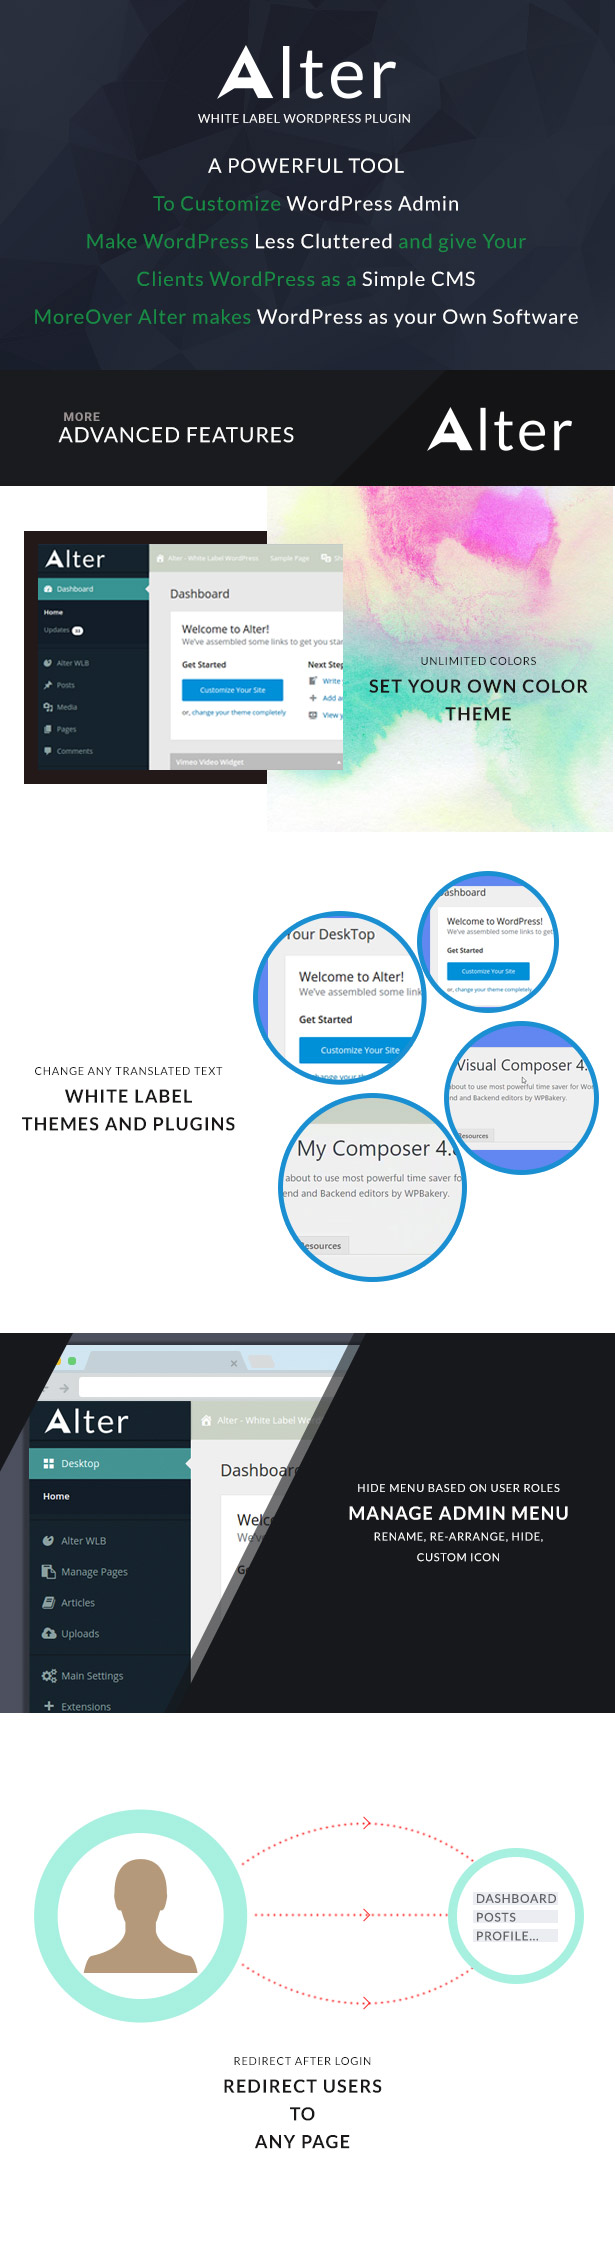 Alter White Label WordPress Plugin features